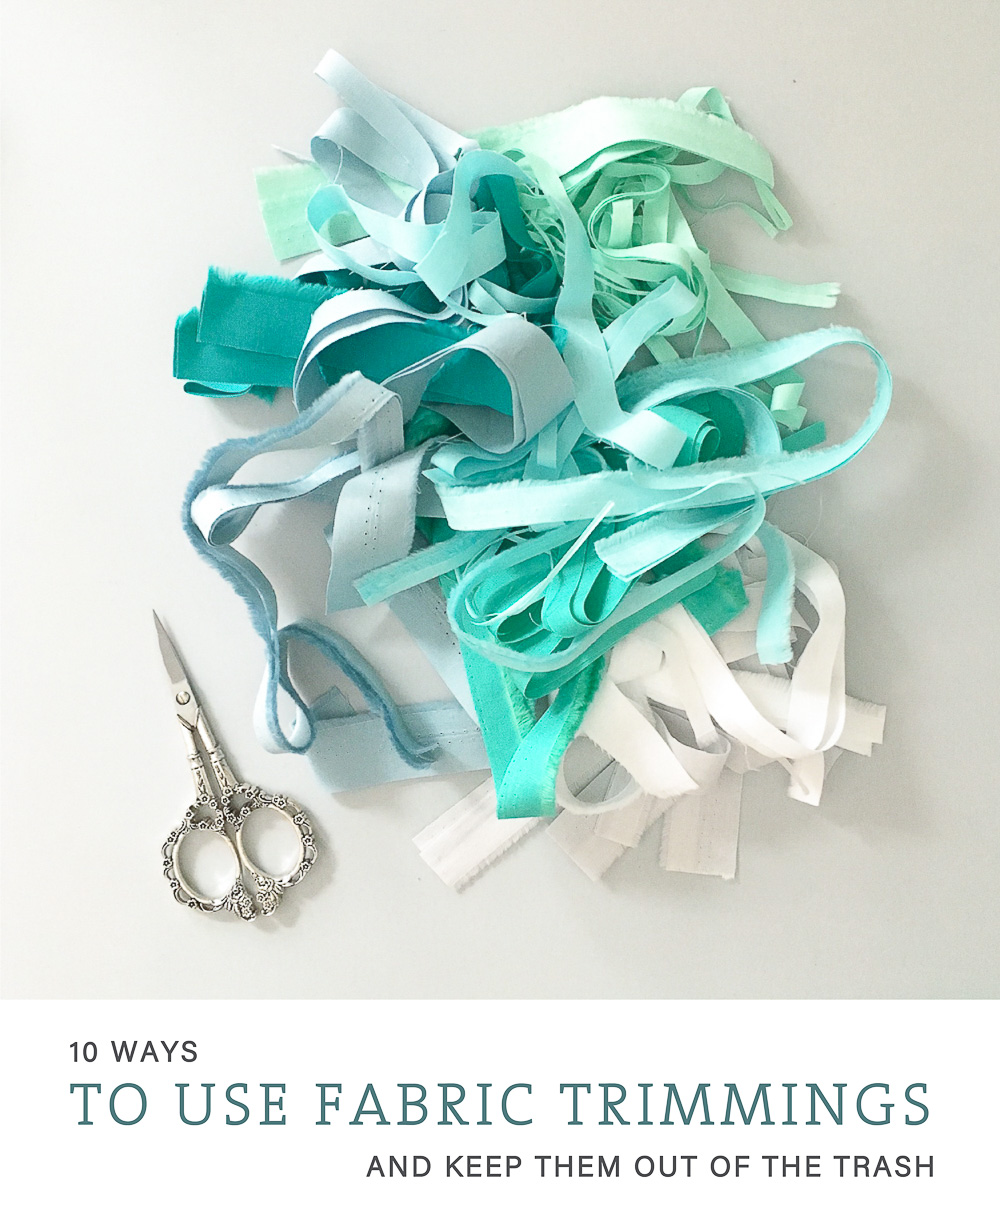 10 Uses for Fabric Trimmings | villageboundquilts.com